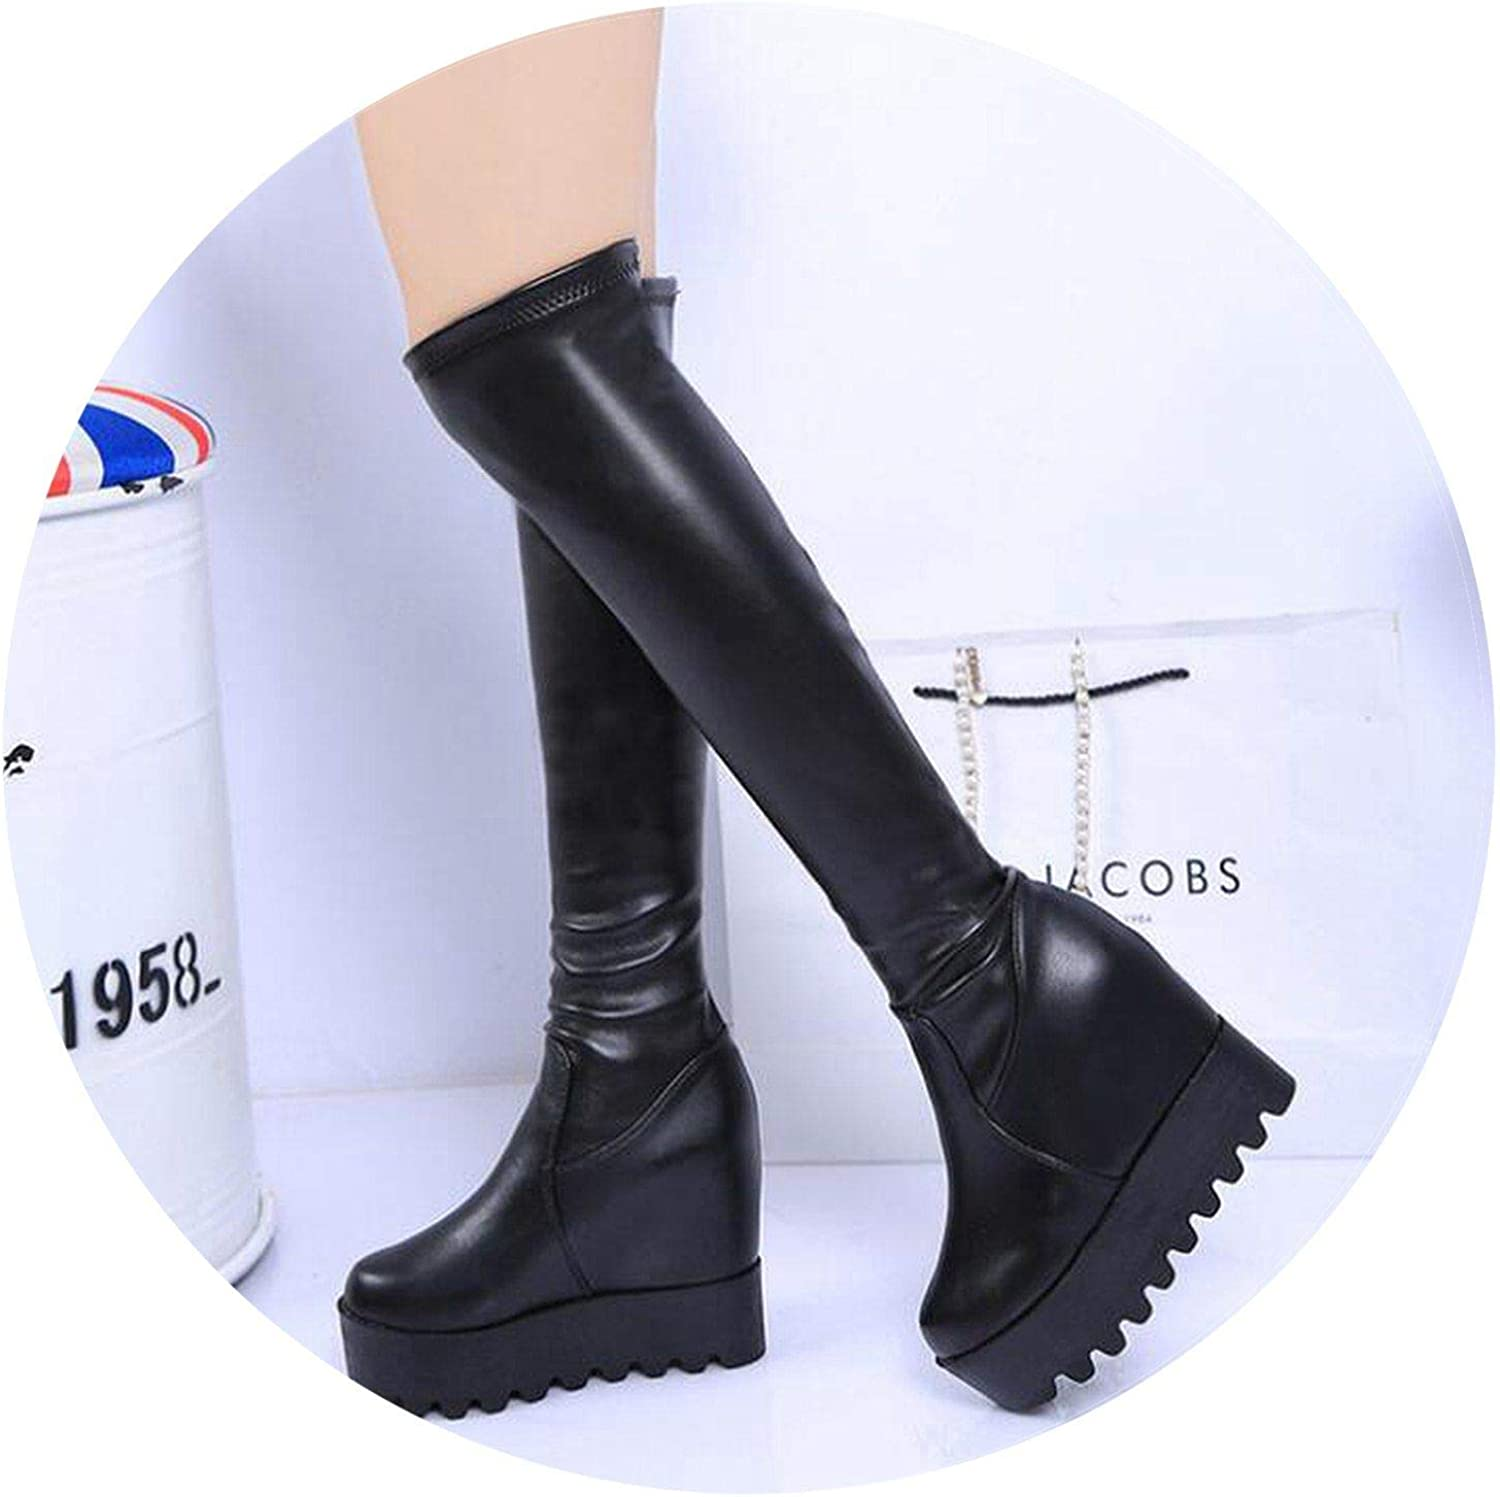 Summer-lavender Women shoes Winter Elastic Boots Women Boots Waterproof Over Knee Boots High Long Warm Boots